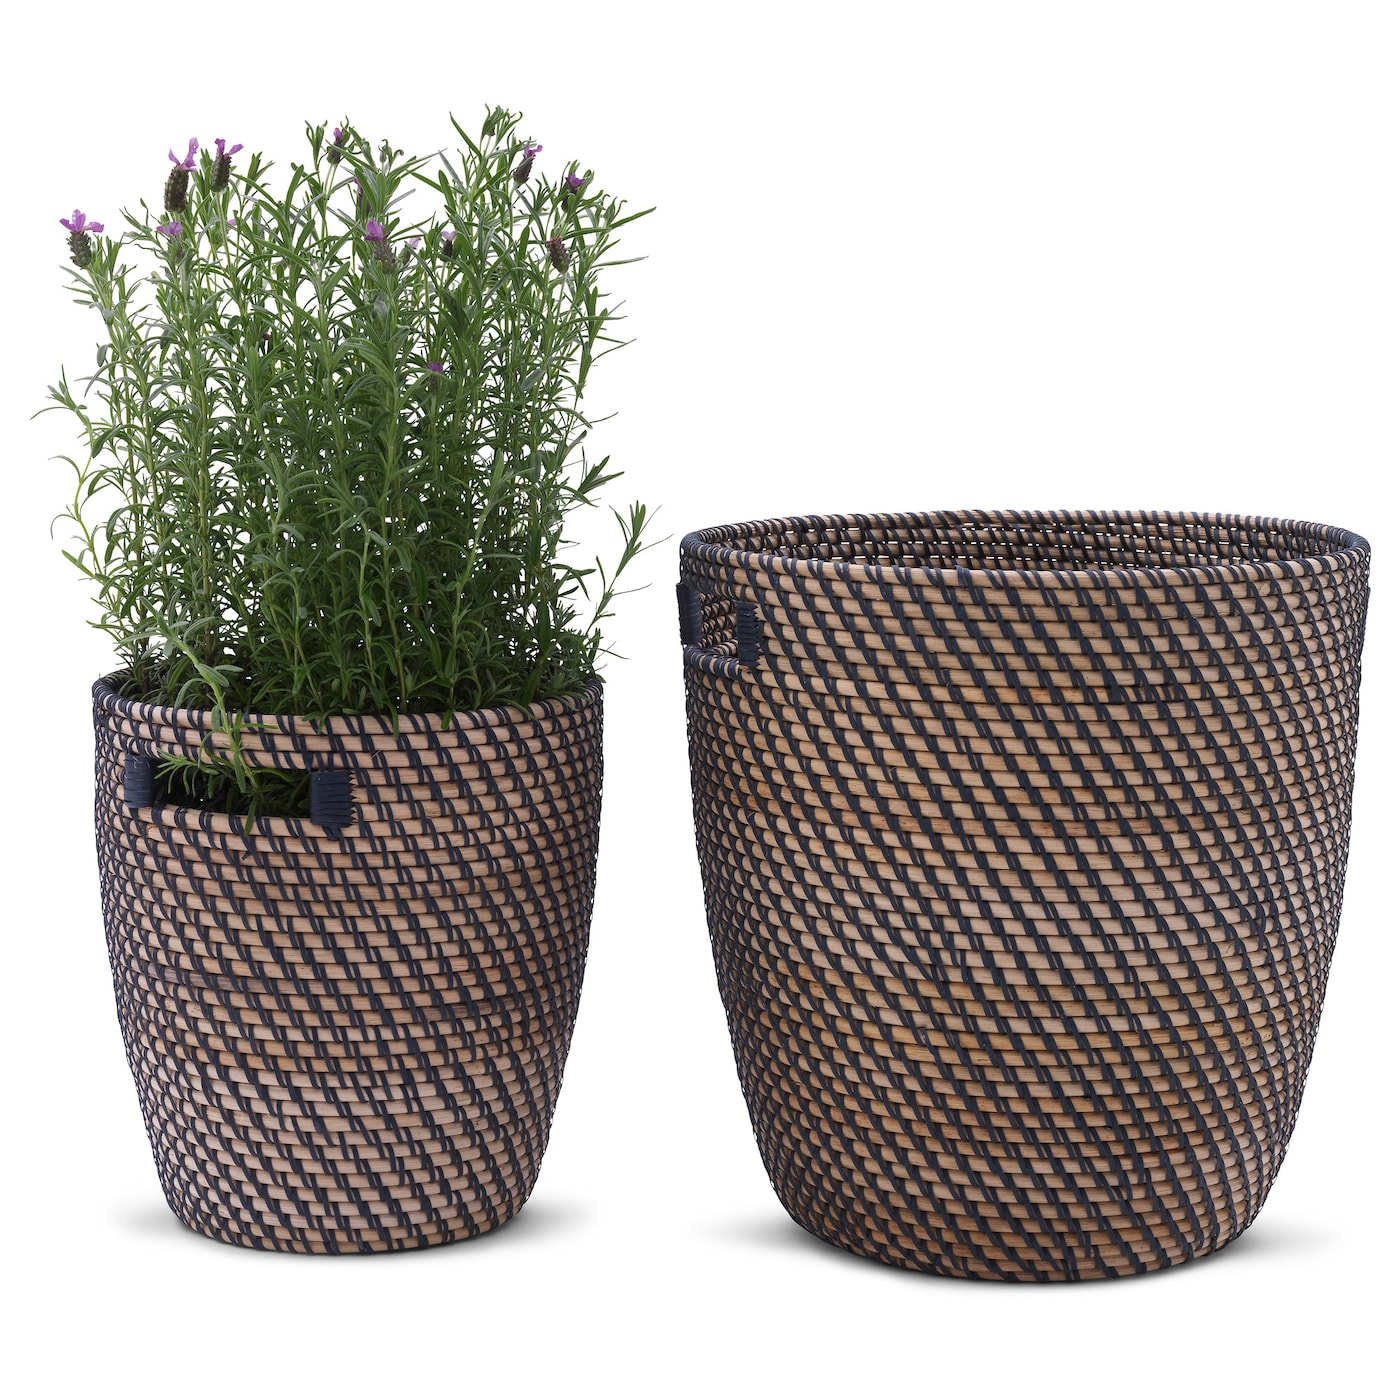 IKEA RÅGKORN plant pot A plastic inner pot makes the plant pot waterproof.